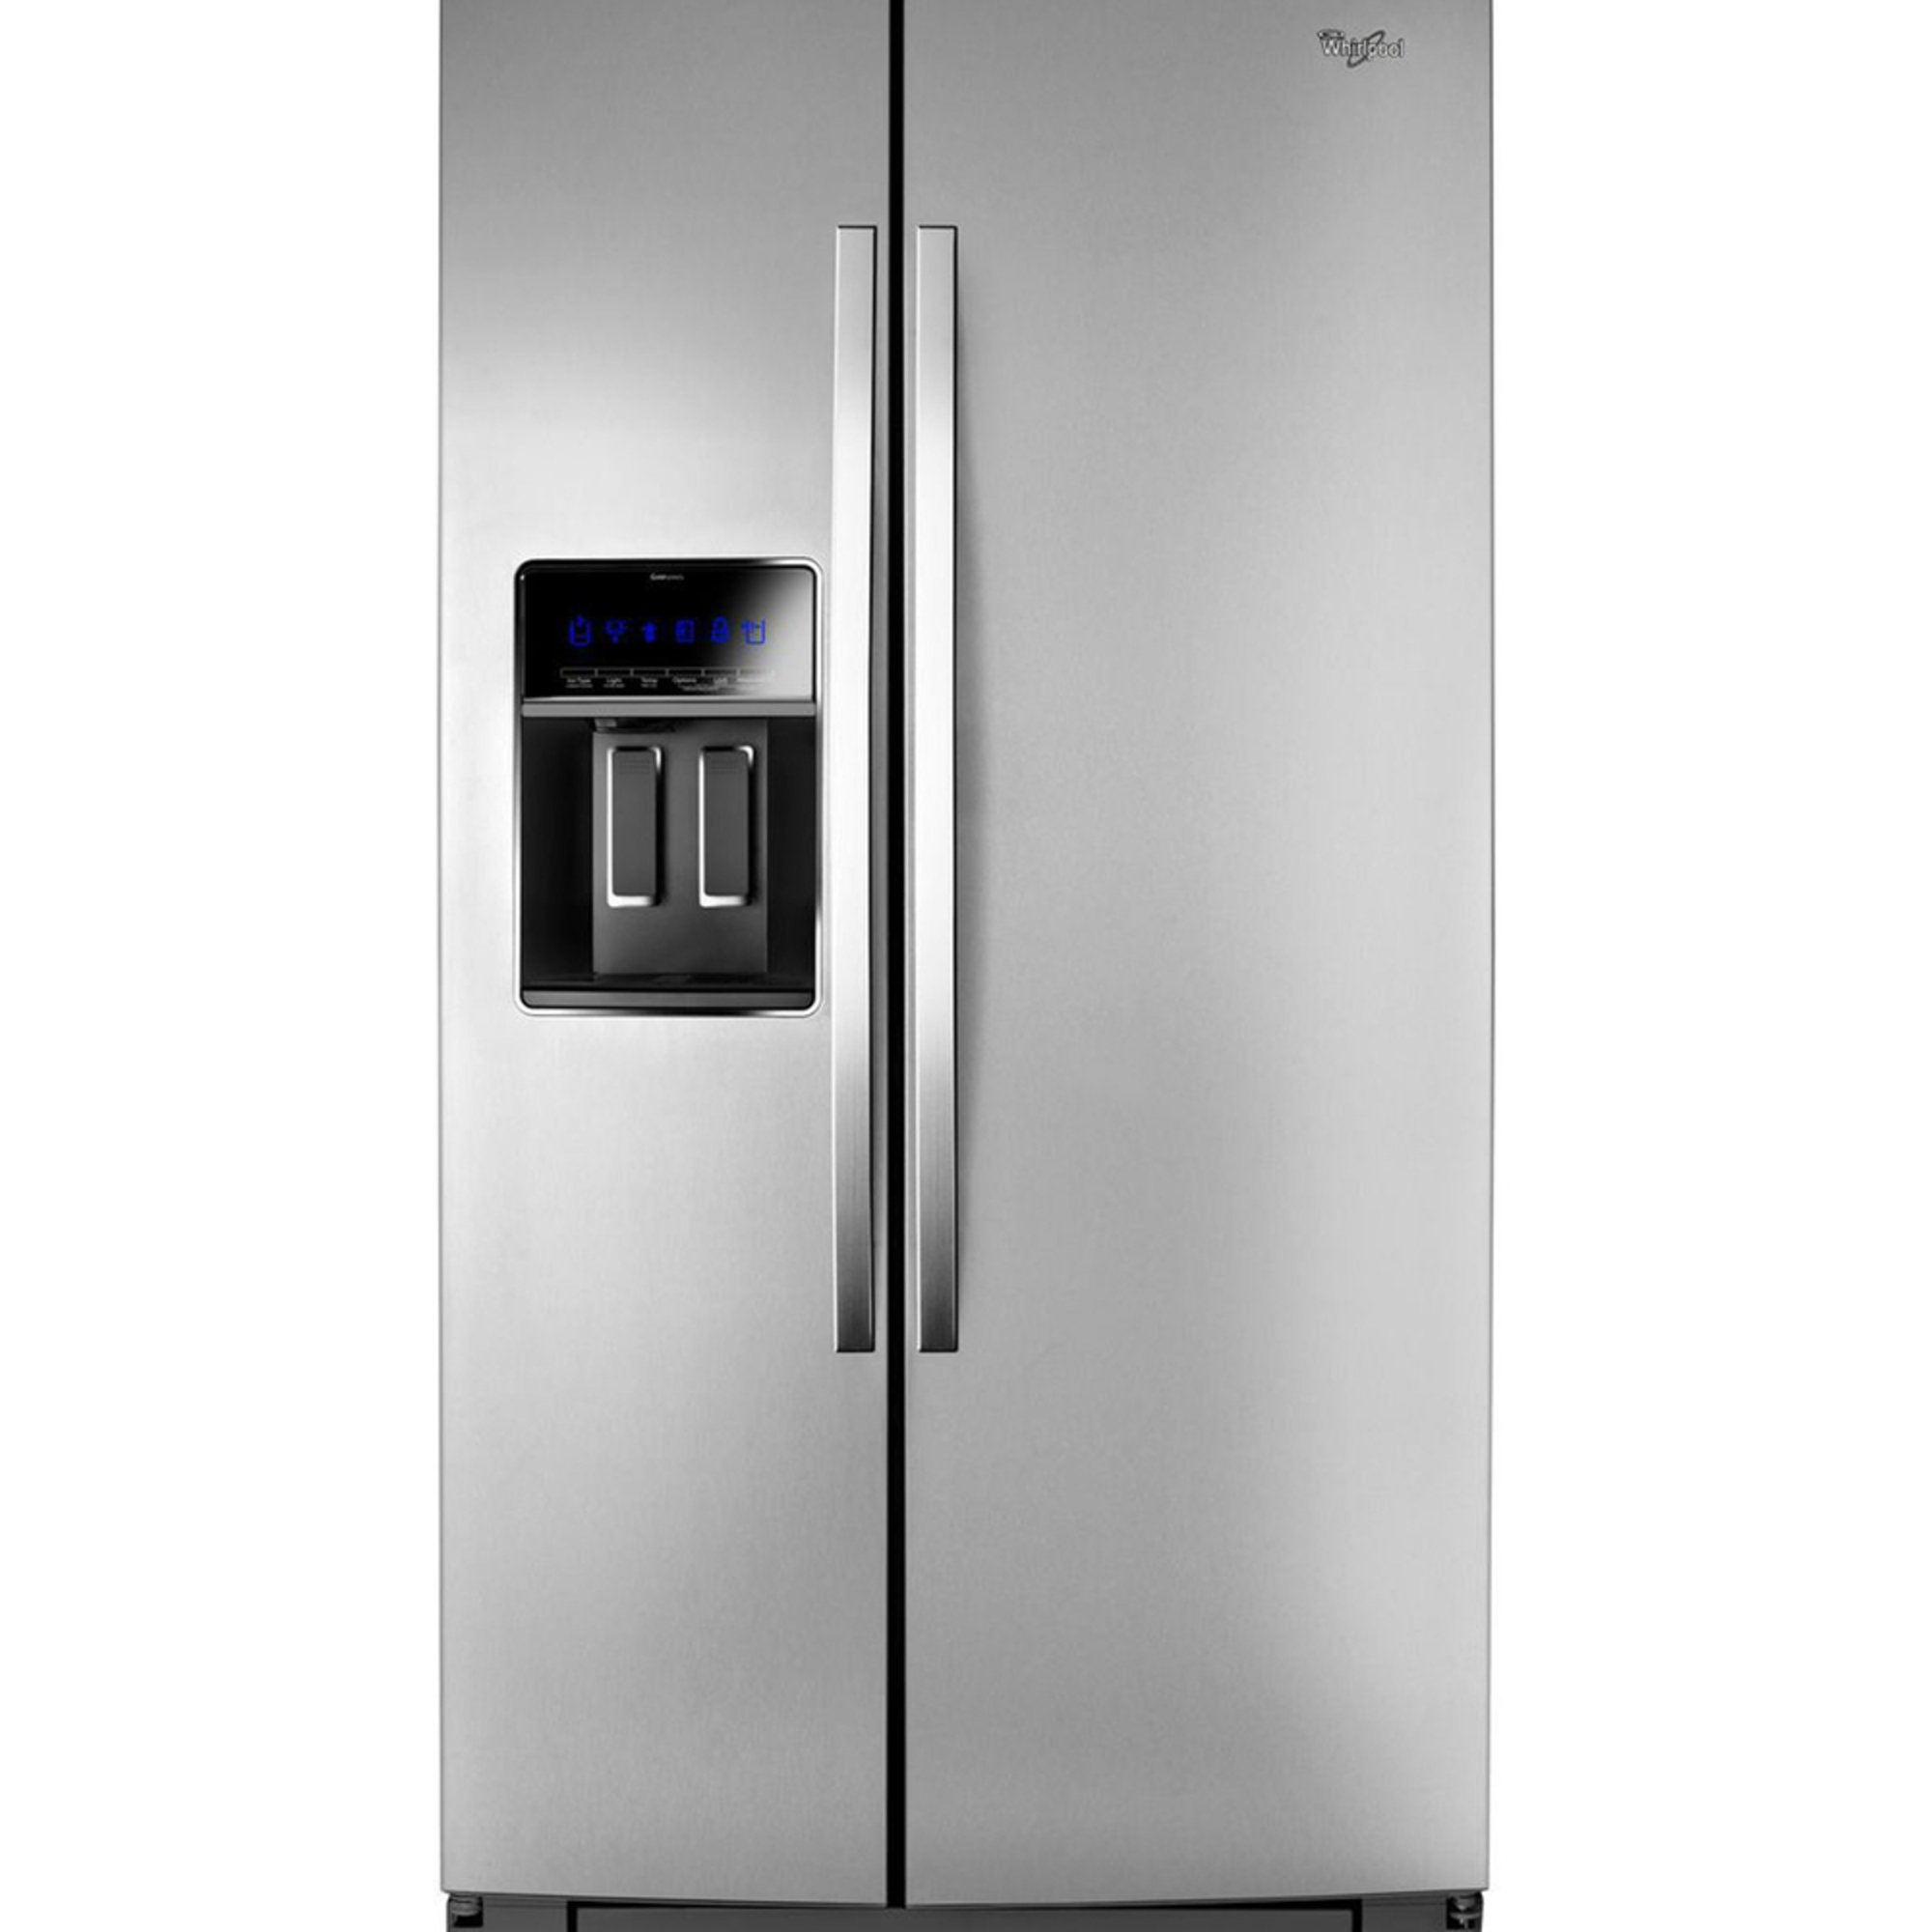 whirlpool 25 side by side refrigerator stainless steel wrs975sidm graveyard home. Black Bedroom Furniture Sets. Home Design Ideas